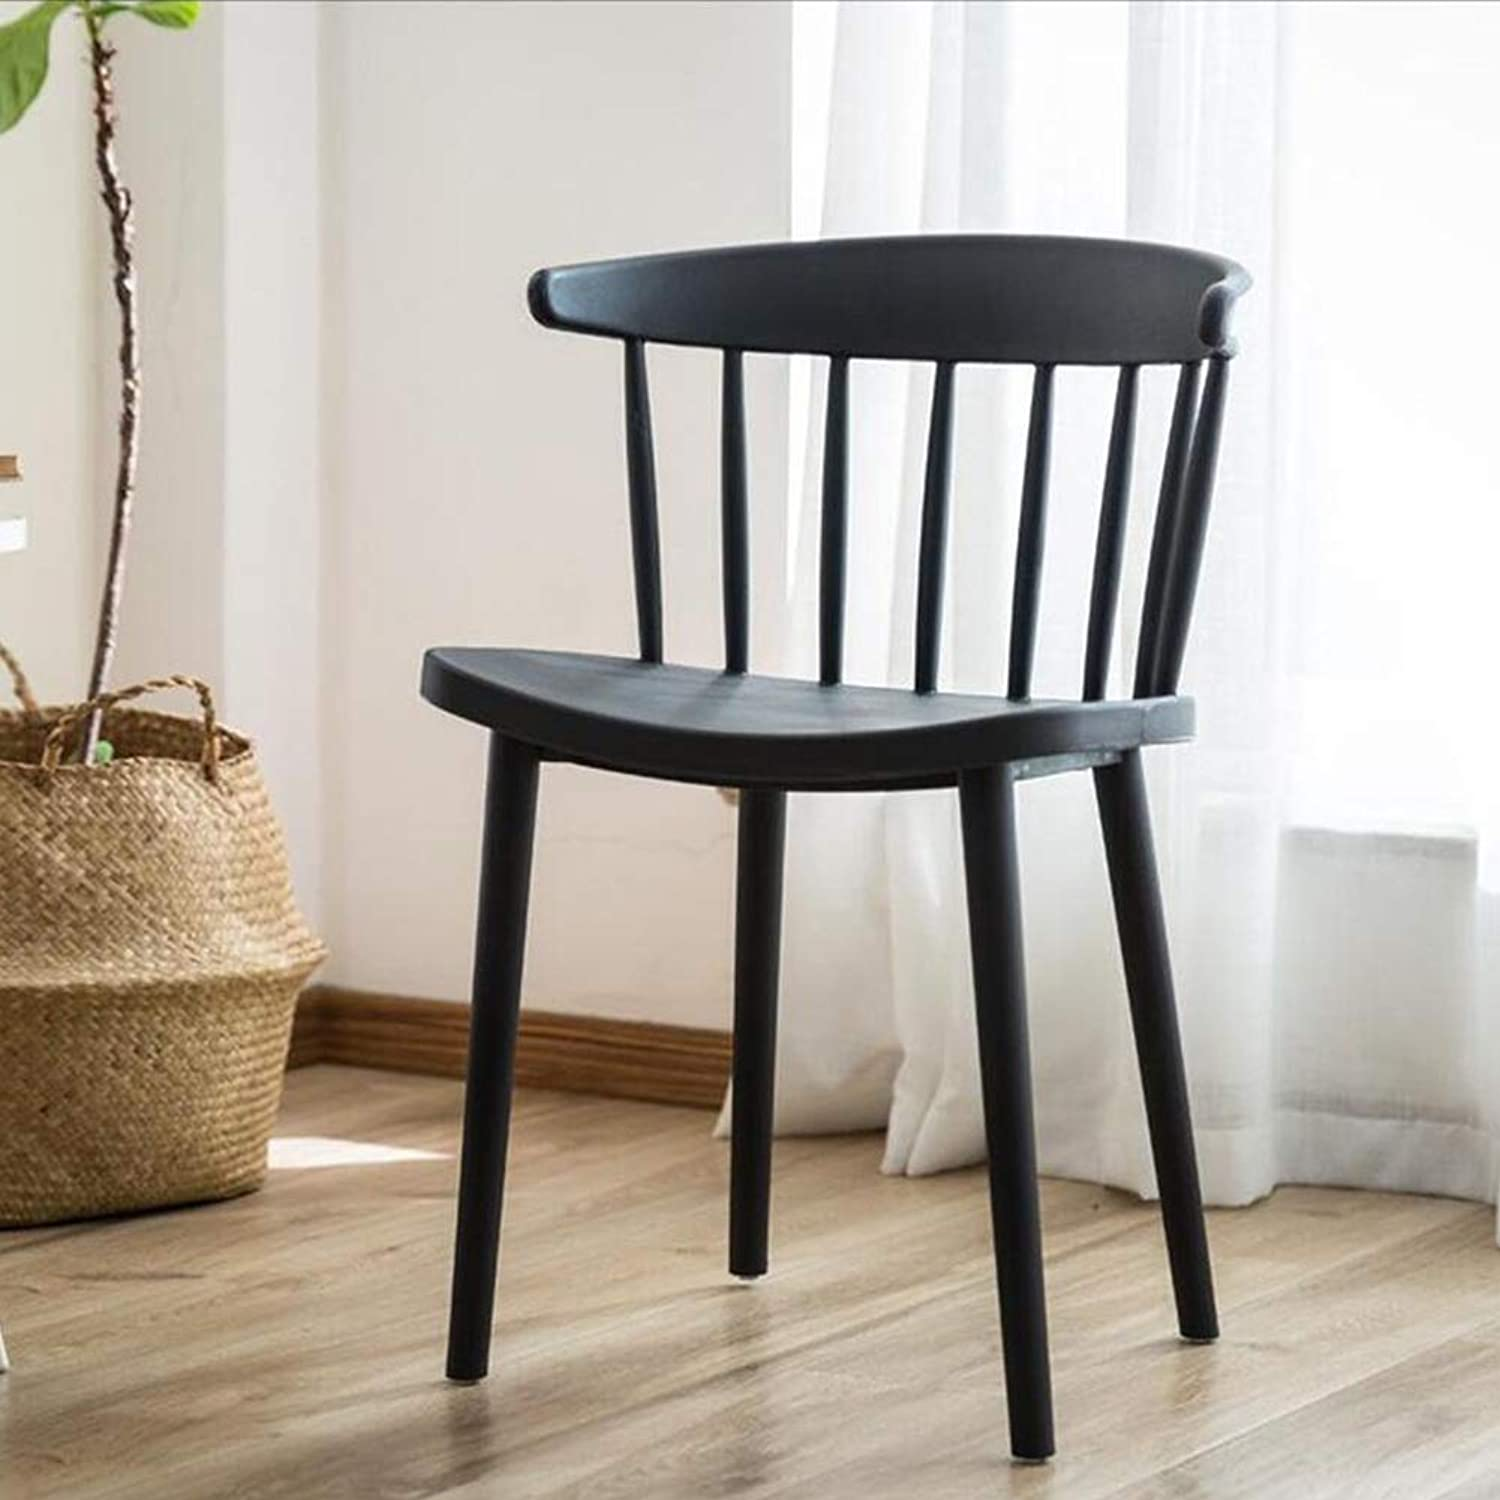 Dining Chairs Seat Chair Northern Europe Modern and Simple Household Backrest Plastic Creativity Coffee Negotiation Restaurant FENPING (color   Black)